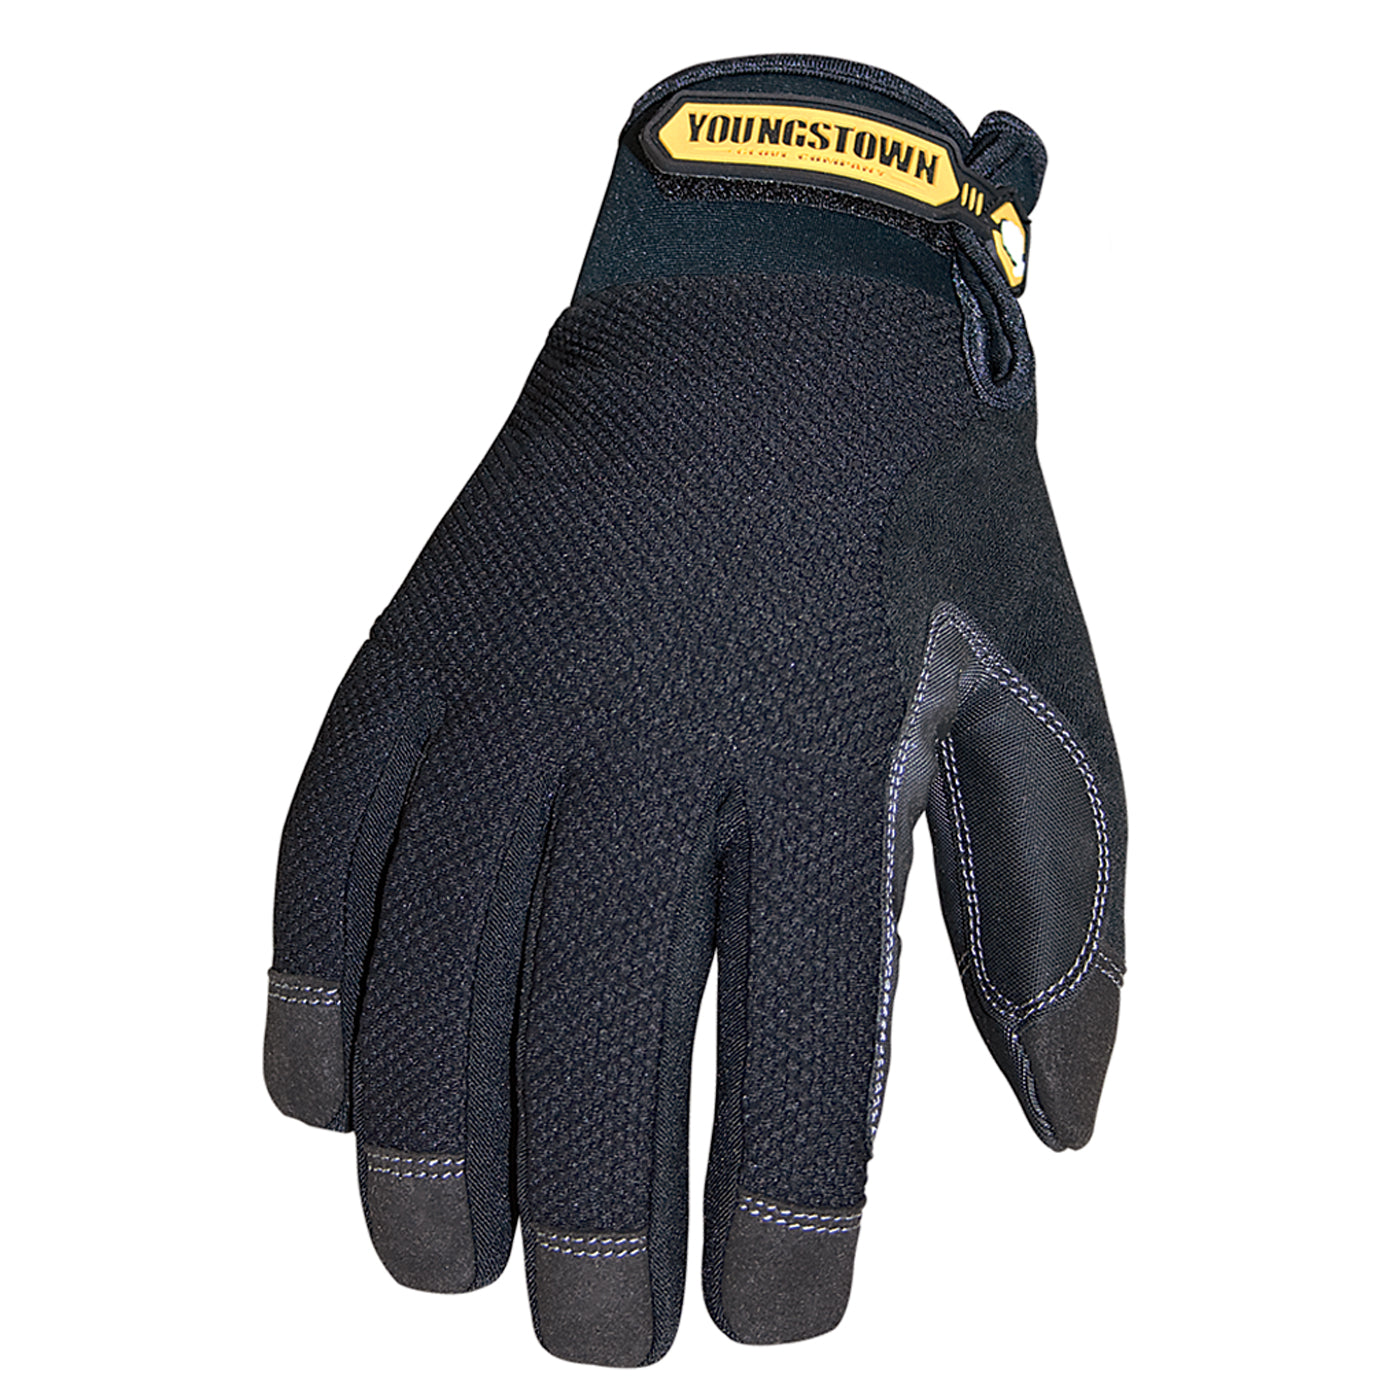 03-3450-80 Youngstown Waterproof Winter Plus Glove - Main image